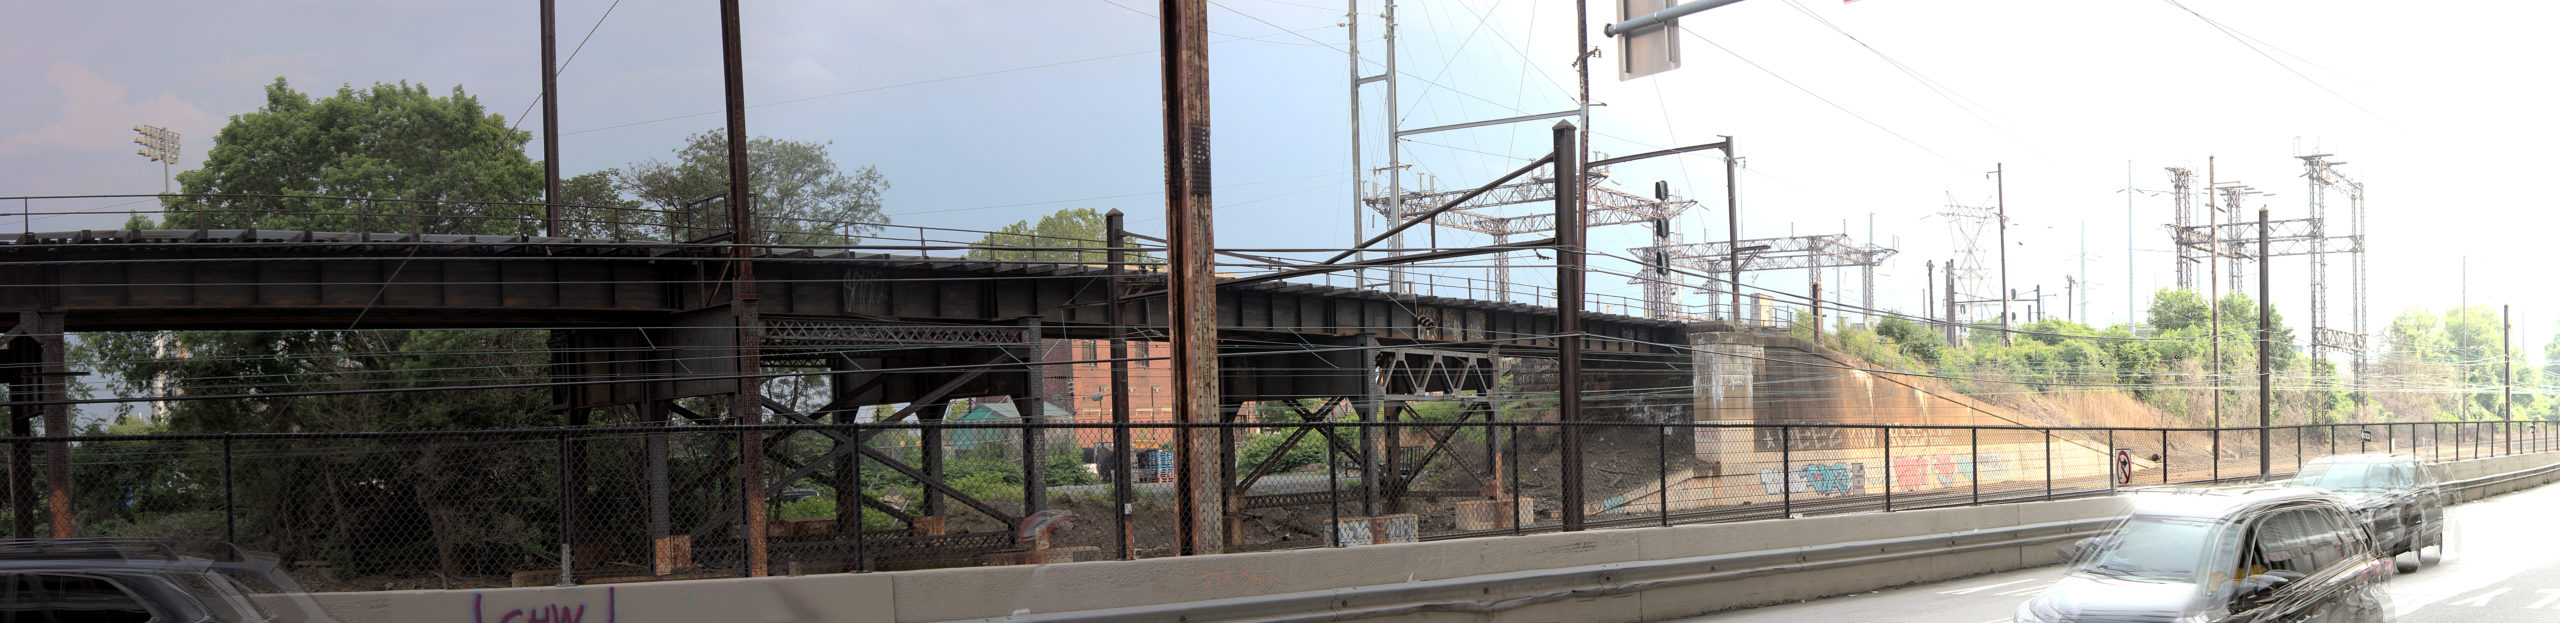 West Philadelphia Elevated Branch Health Sciences Dr Philadelphia, PA Copyright 2019, Bob Bruhin. All rights reserved.